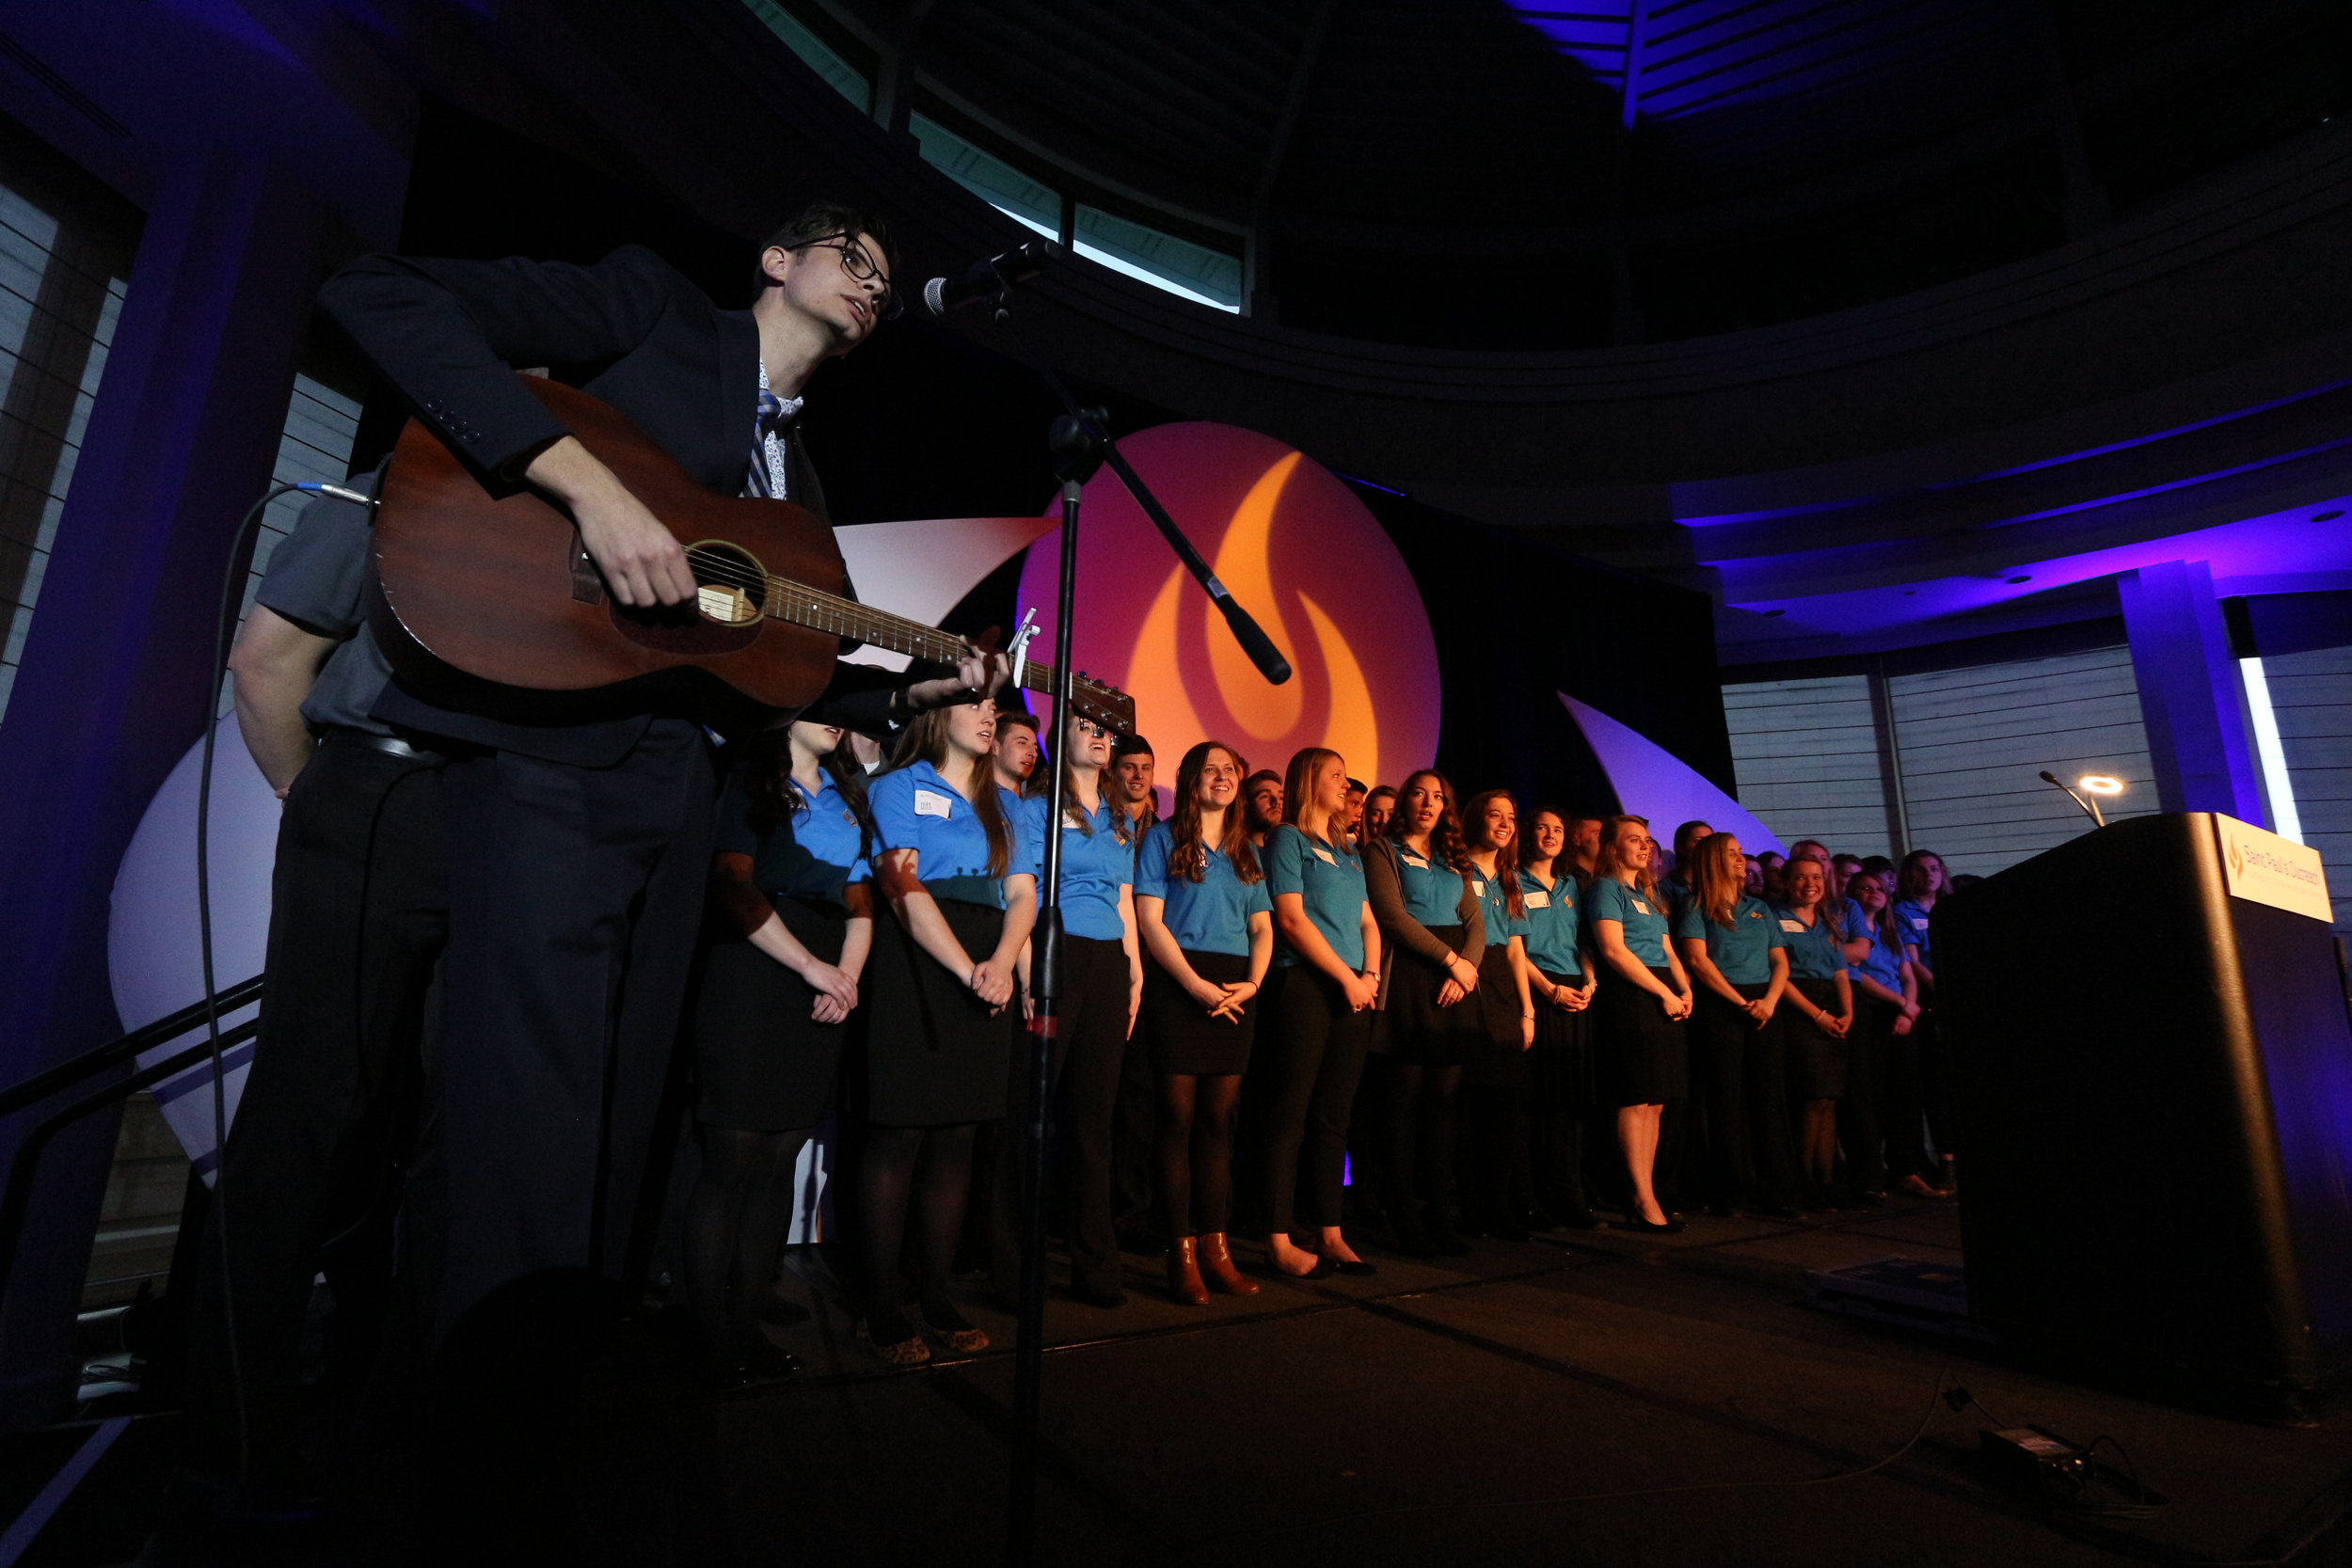 SPO students and staff lined the stage and led a song of worship at the end of the banquet.